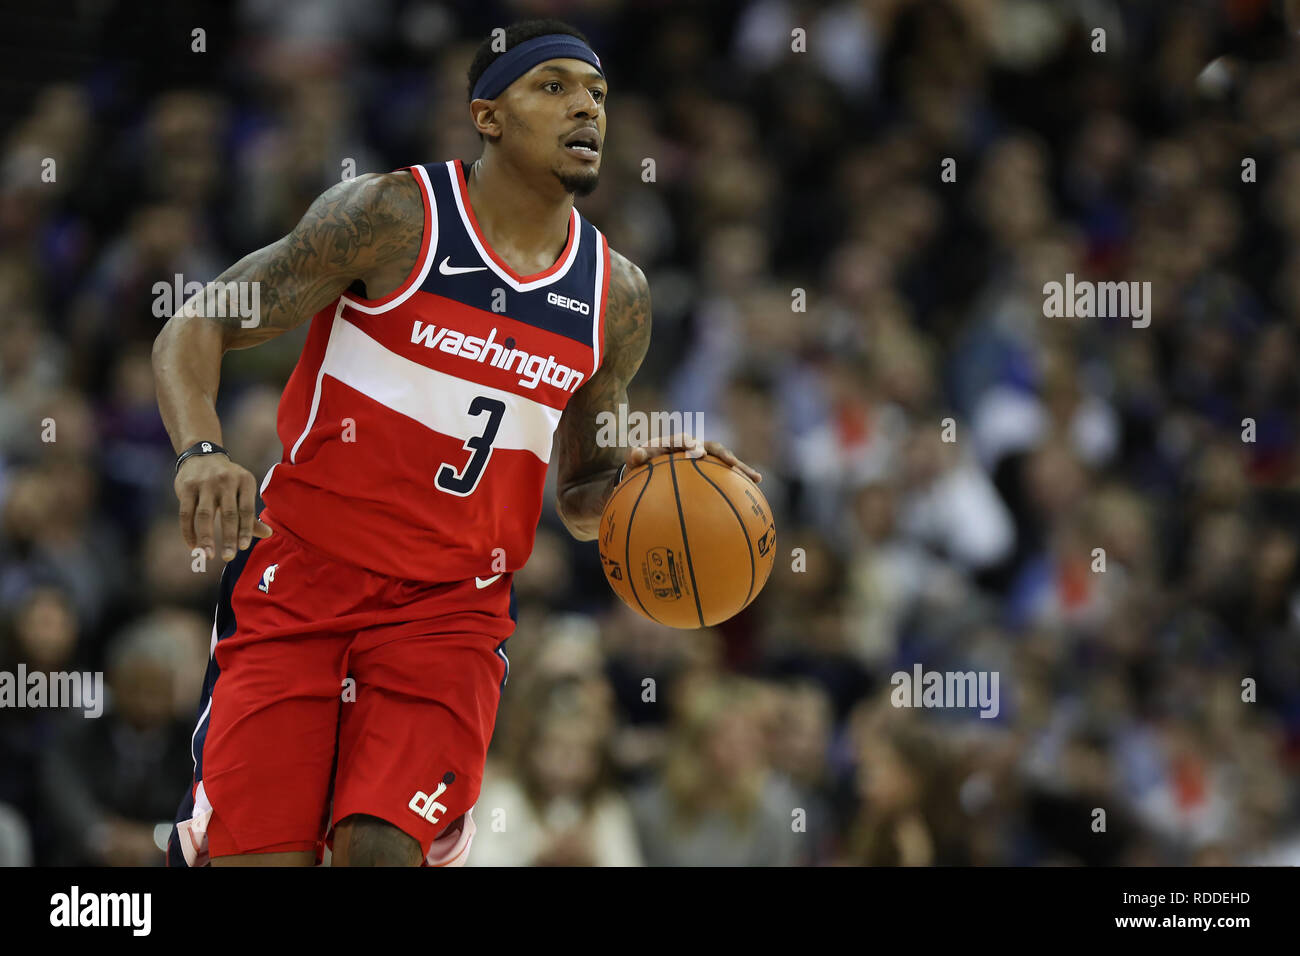 df4a2c7d8 New York Knicks Stock Photos   New York Knicks Stock Images - Alamy